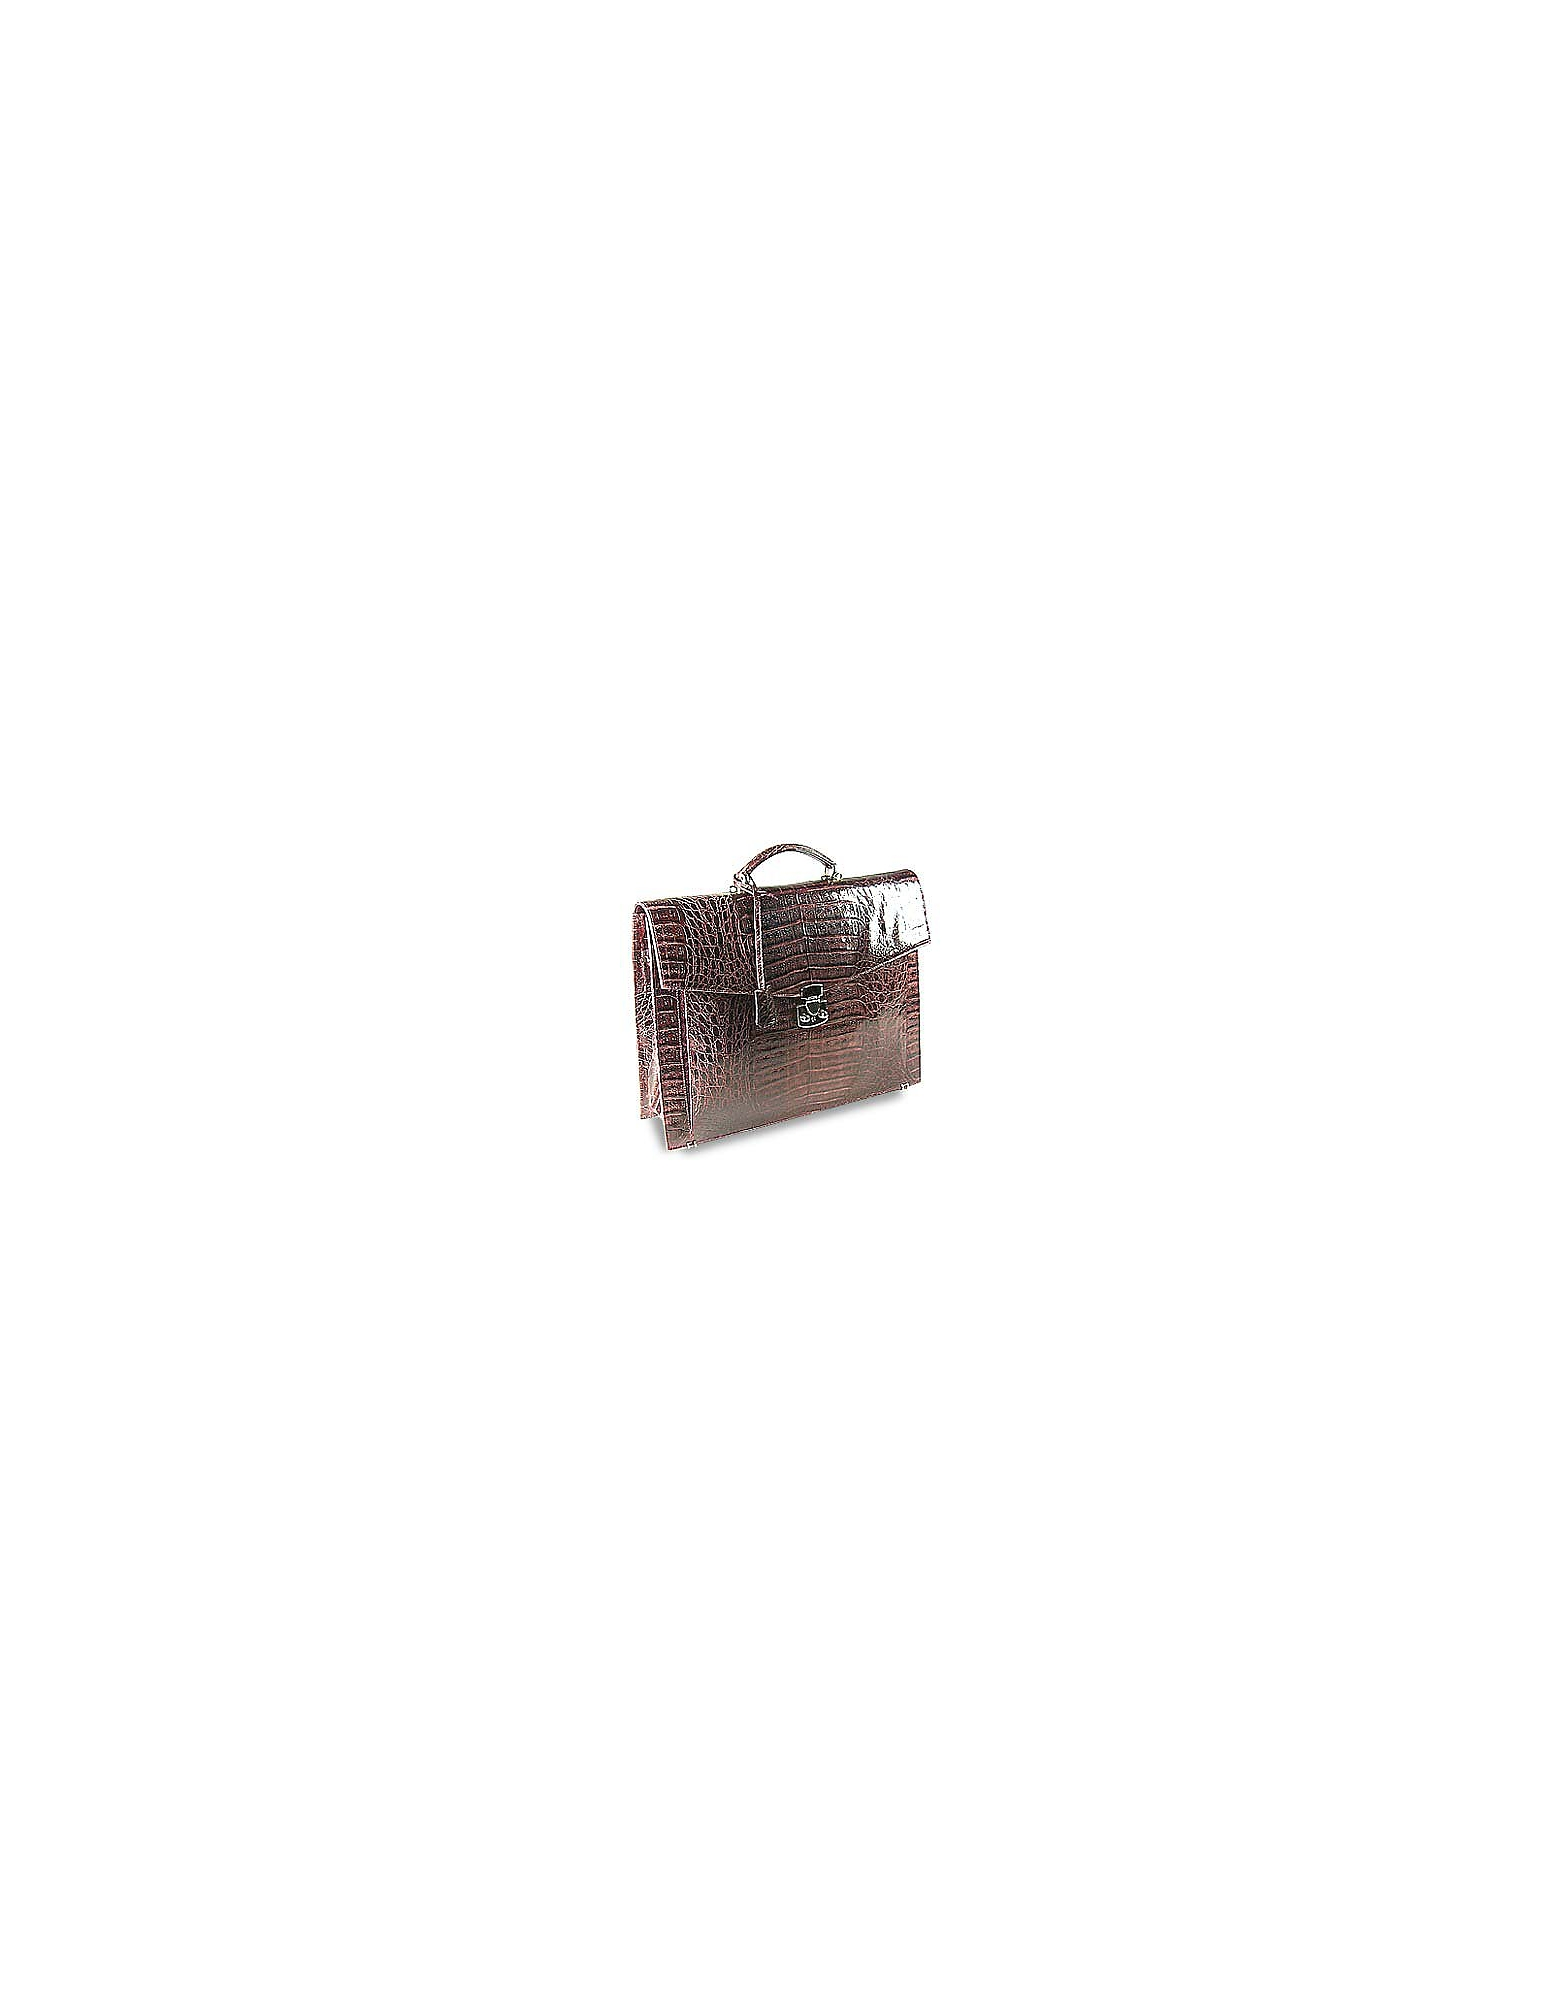 Fontanelli Designer Briefcases,  Brown Croc-Embossed Leather Briefcase